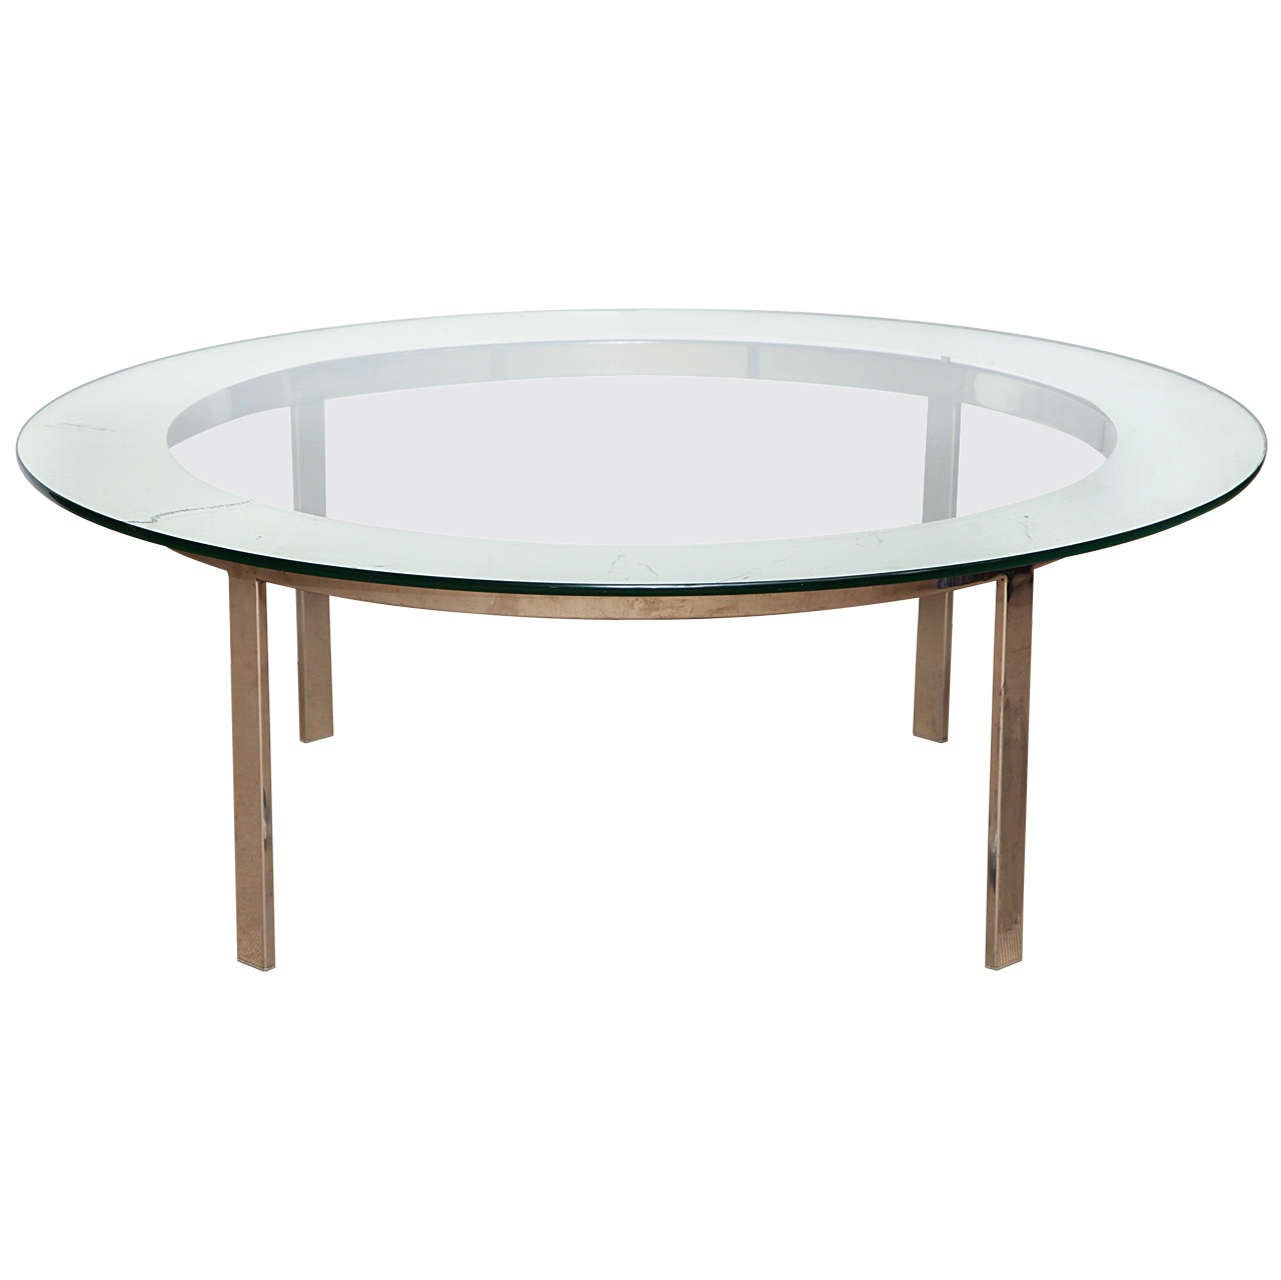 1940's/50's English,Chrome and Glass Low Table